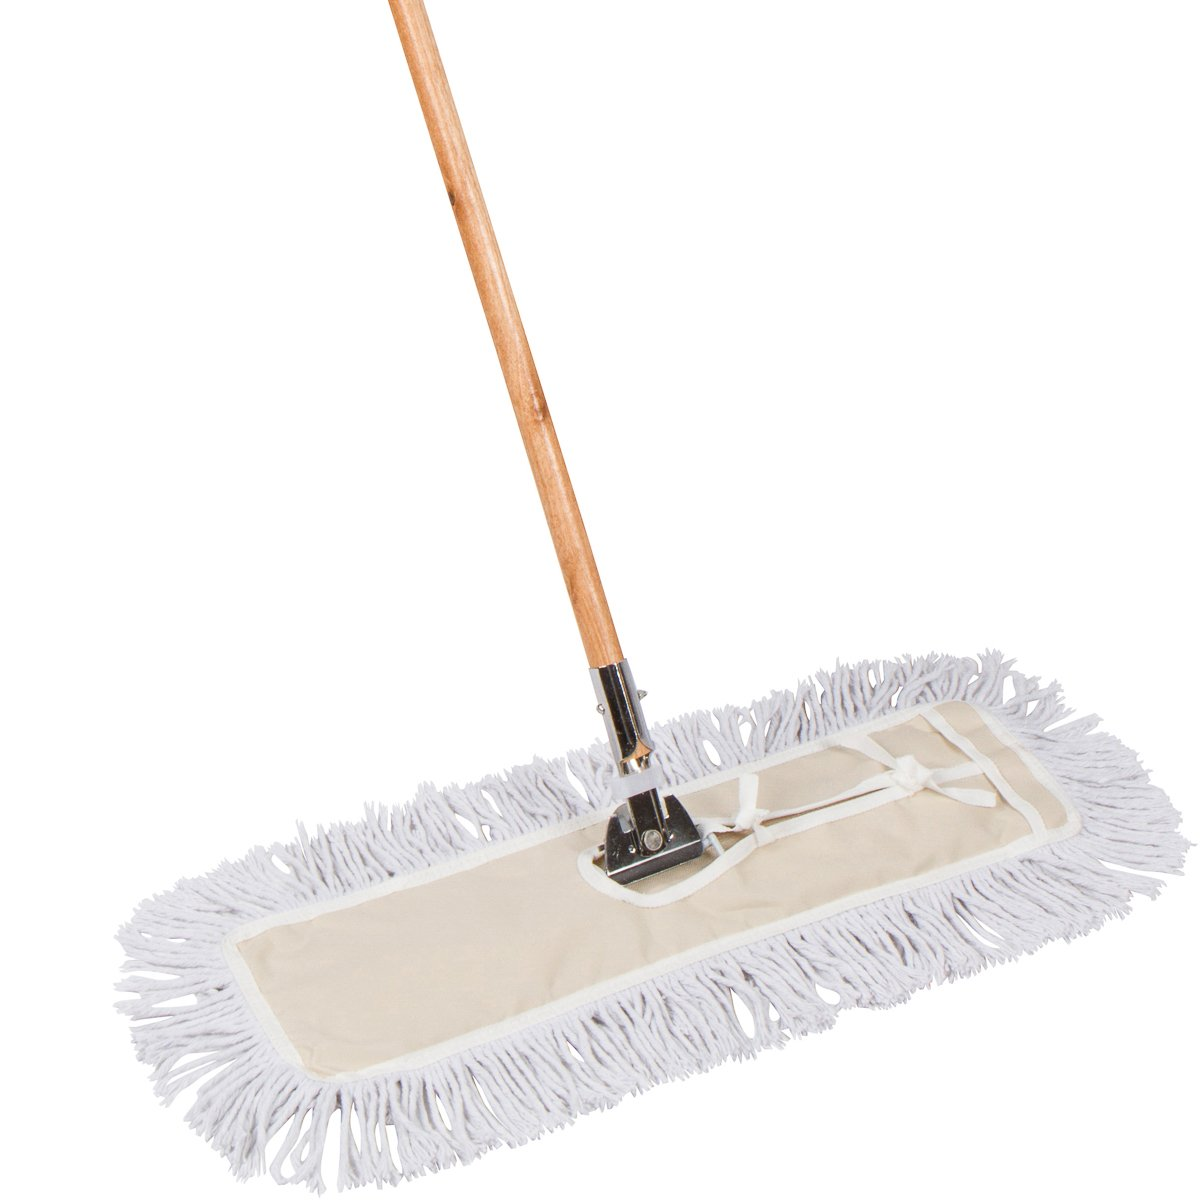 AMR Market 24 inch Industrial Strength Cotton Dust Mop with Solid Wood Handle and Metal Frame. 24'' X 5'' Wide Cotton Mop Head - Hardwood Floor Broom